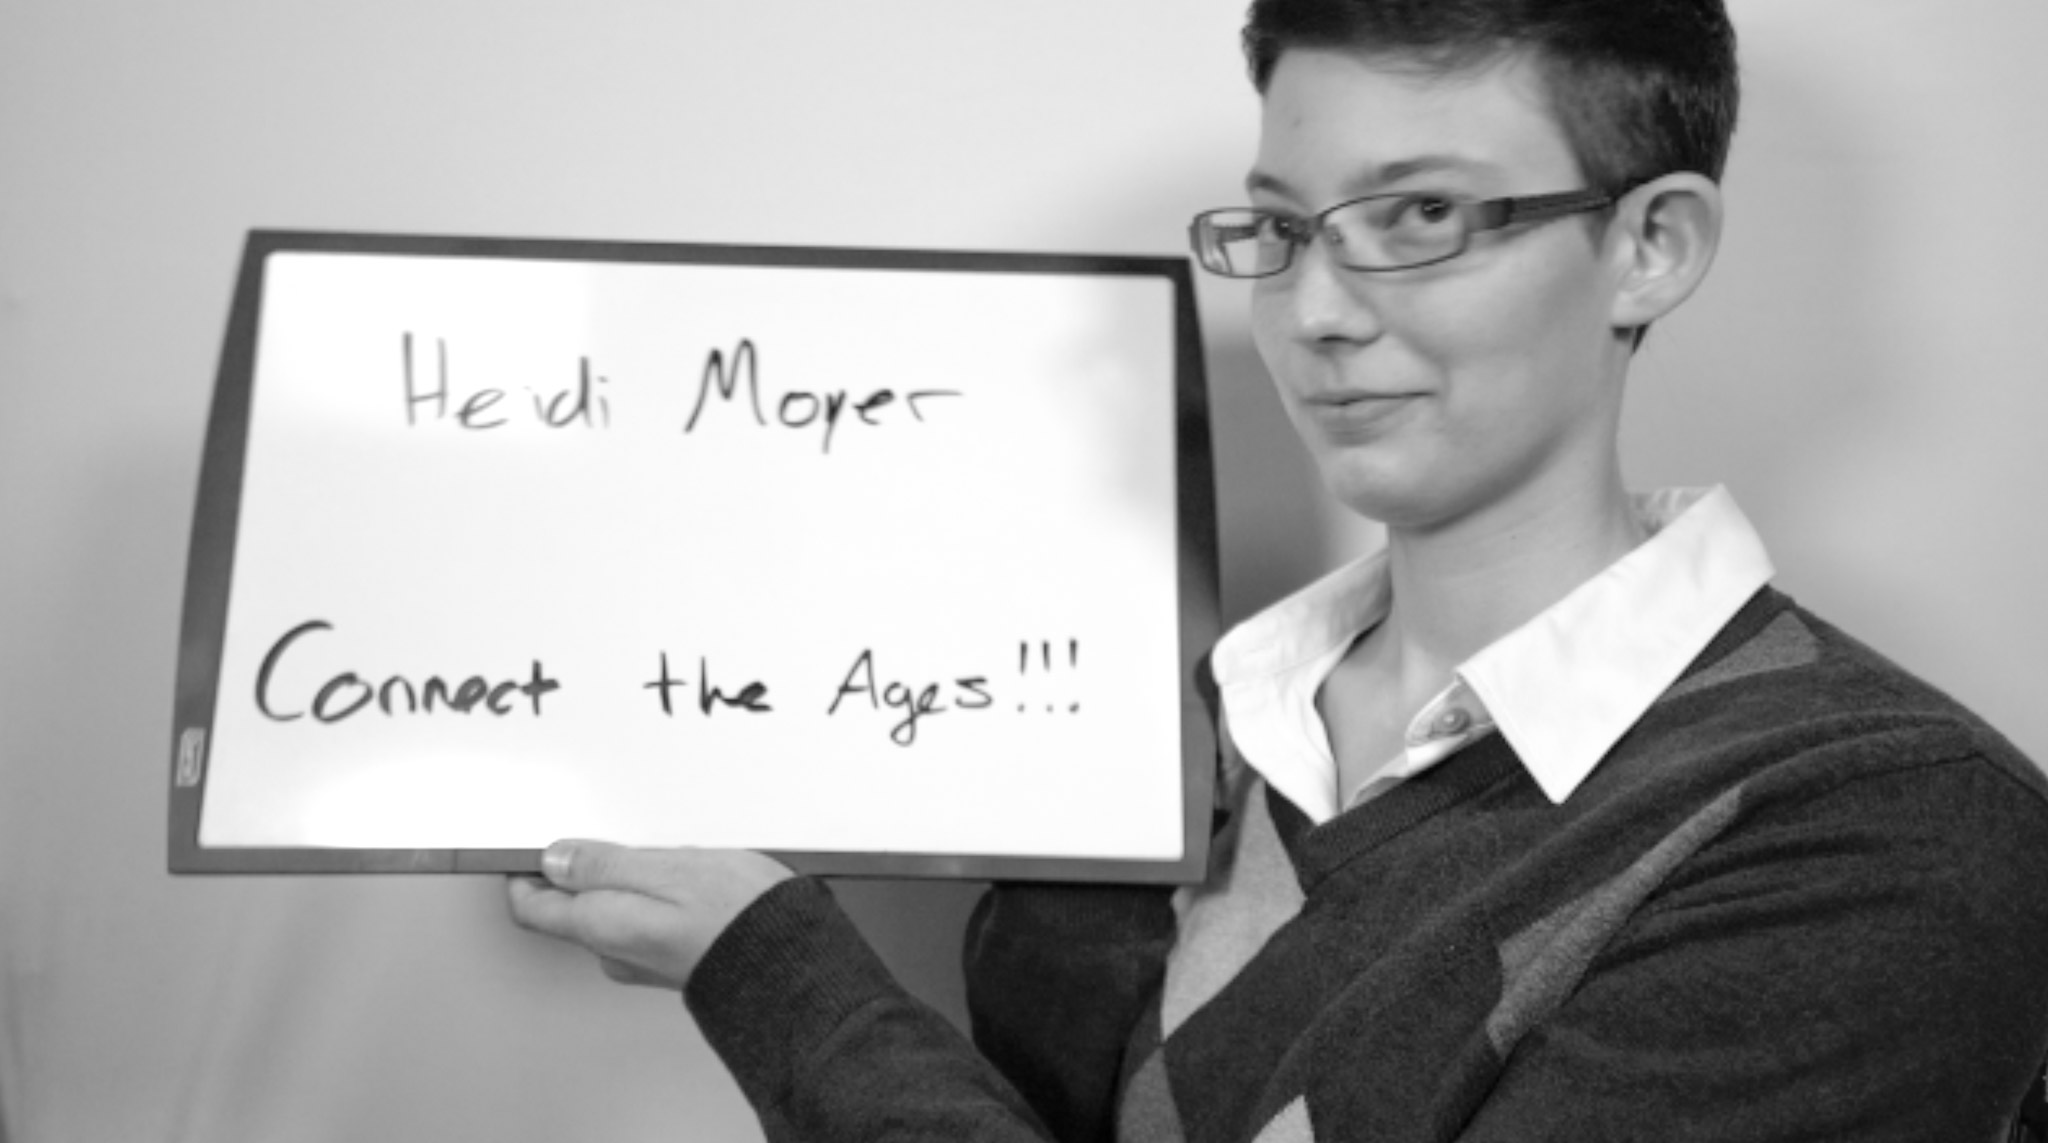 physical-therapy-dpt-young-professional-angelo-state-university-geriatric-career-in-aging-chicago-heidi-moyer-dpt